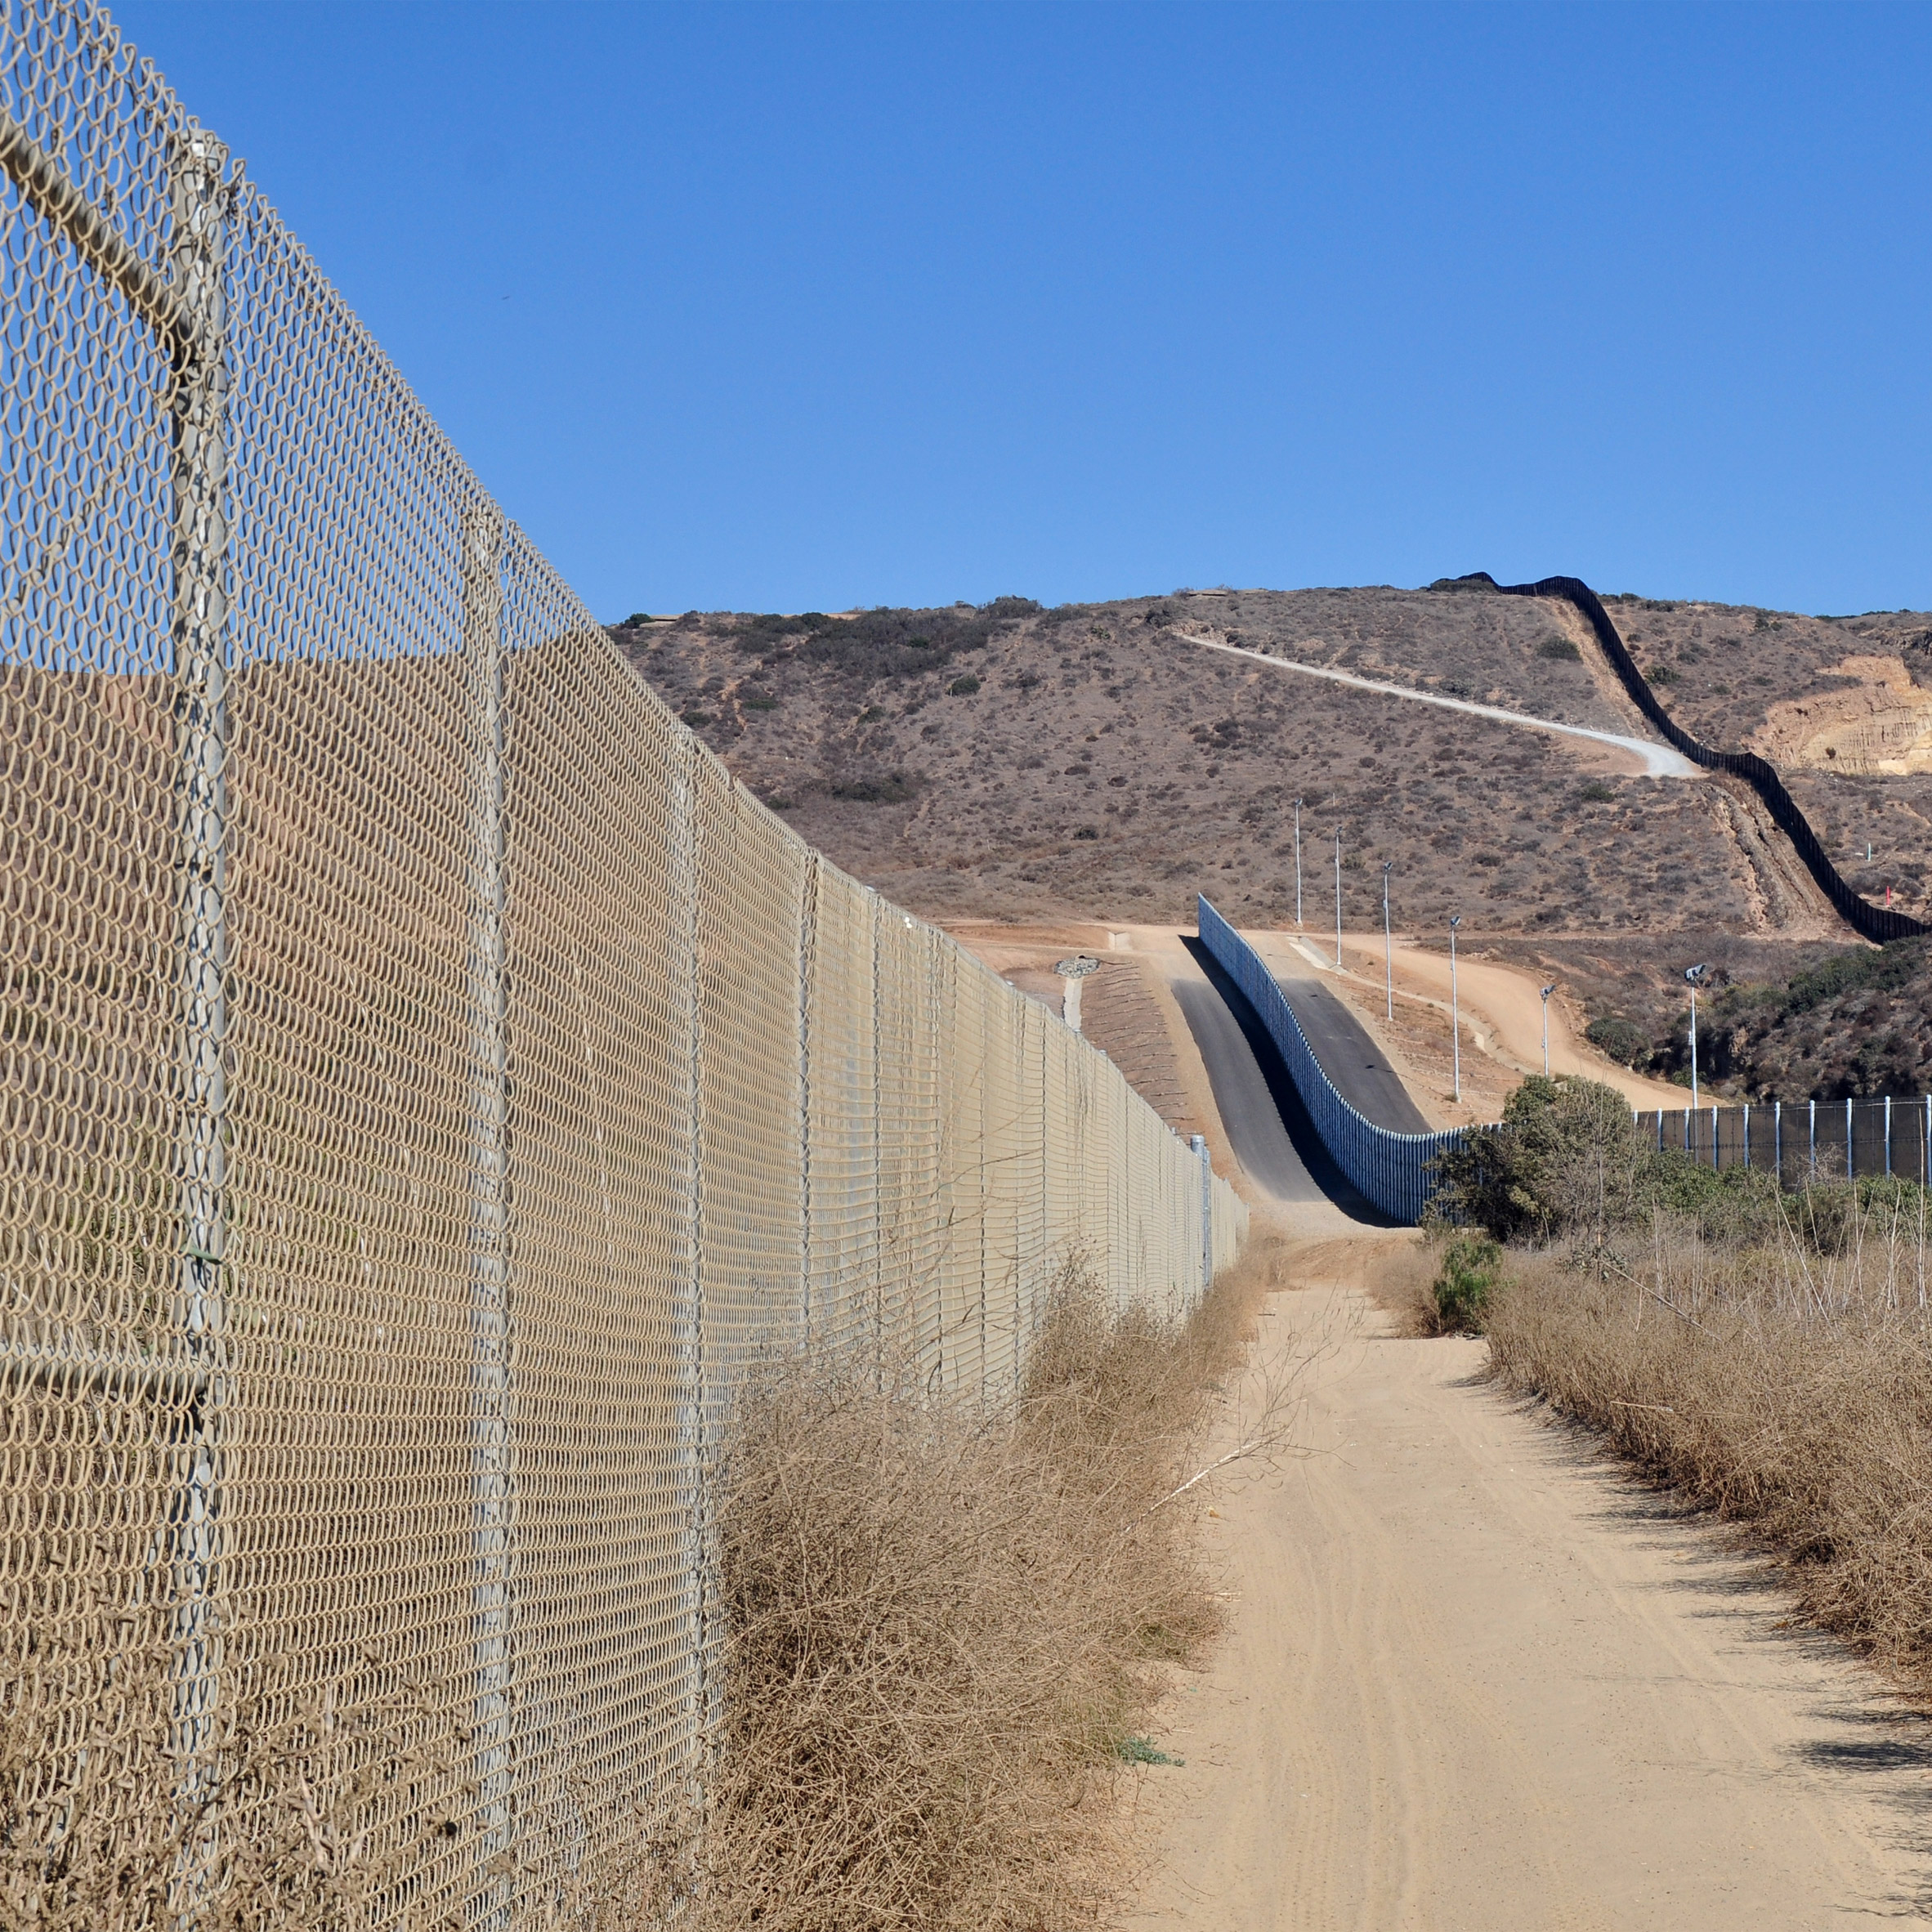 Trump pledges $2 billion to Mexico border wall in budget proposal